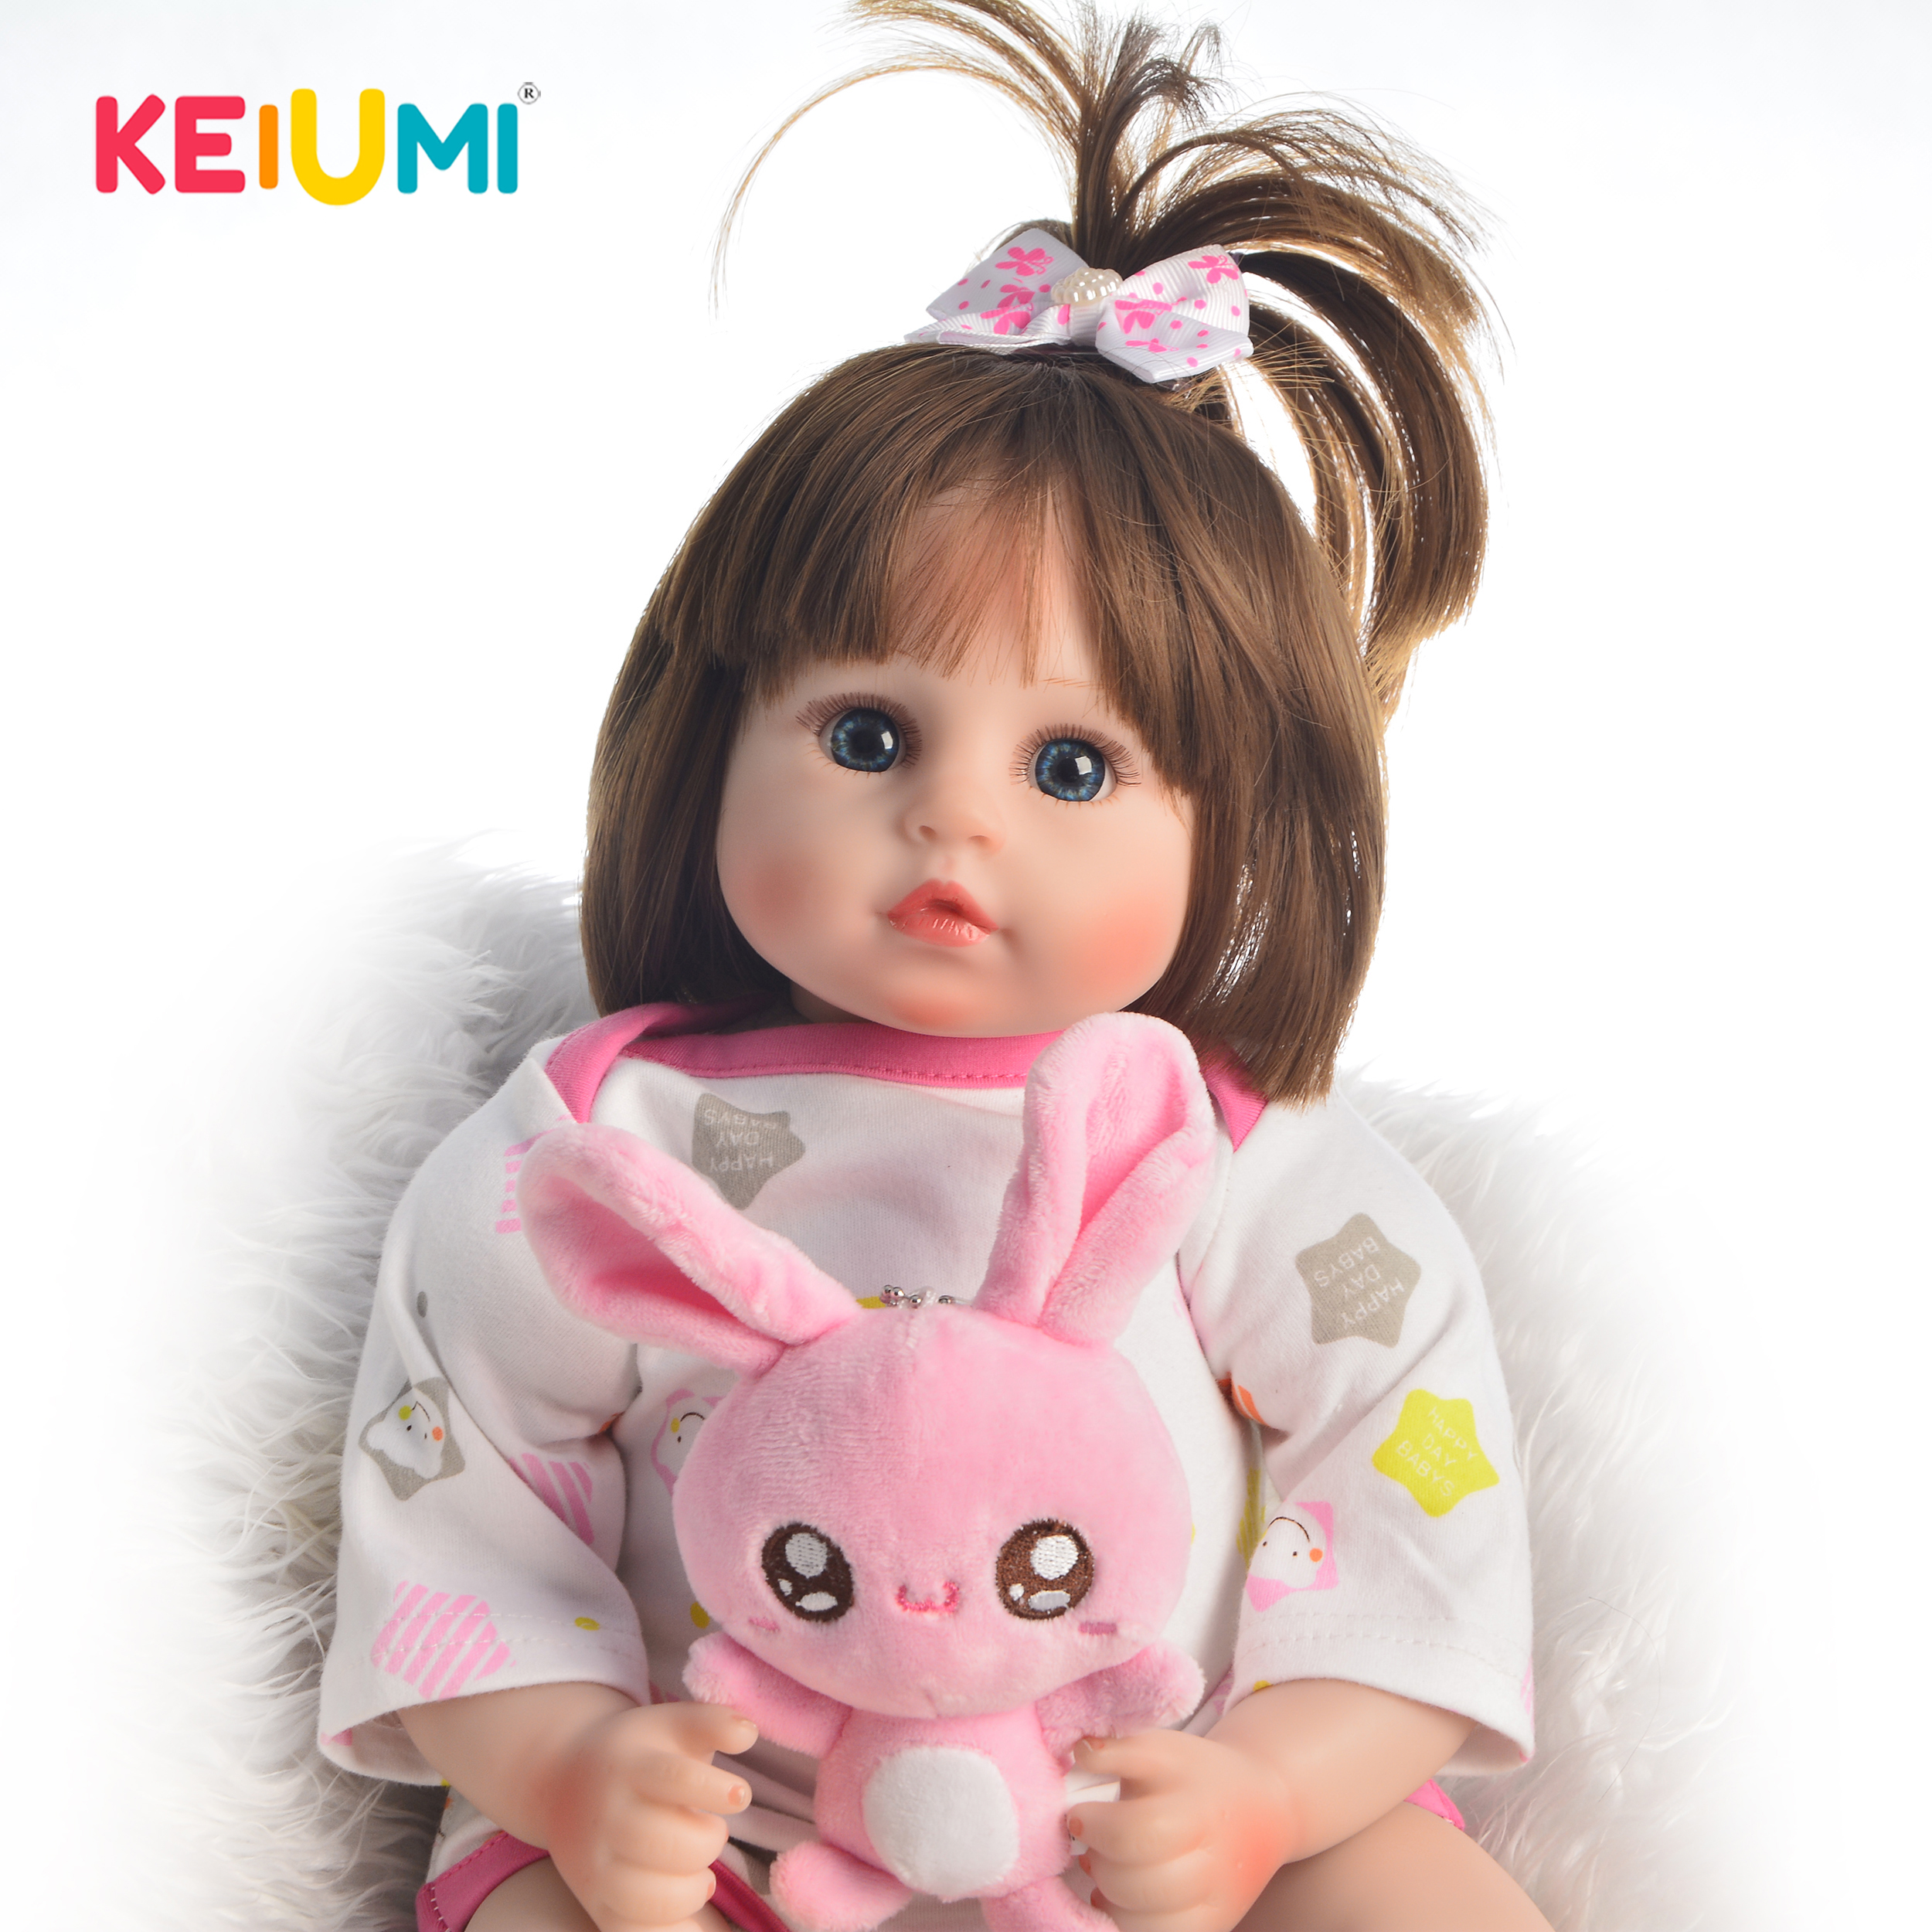 KEIUMI New Arrival 18 Inch Lifelike Reborn Baby Doll Soft Silicone 46 cm Real Looking Baby